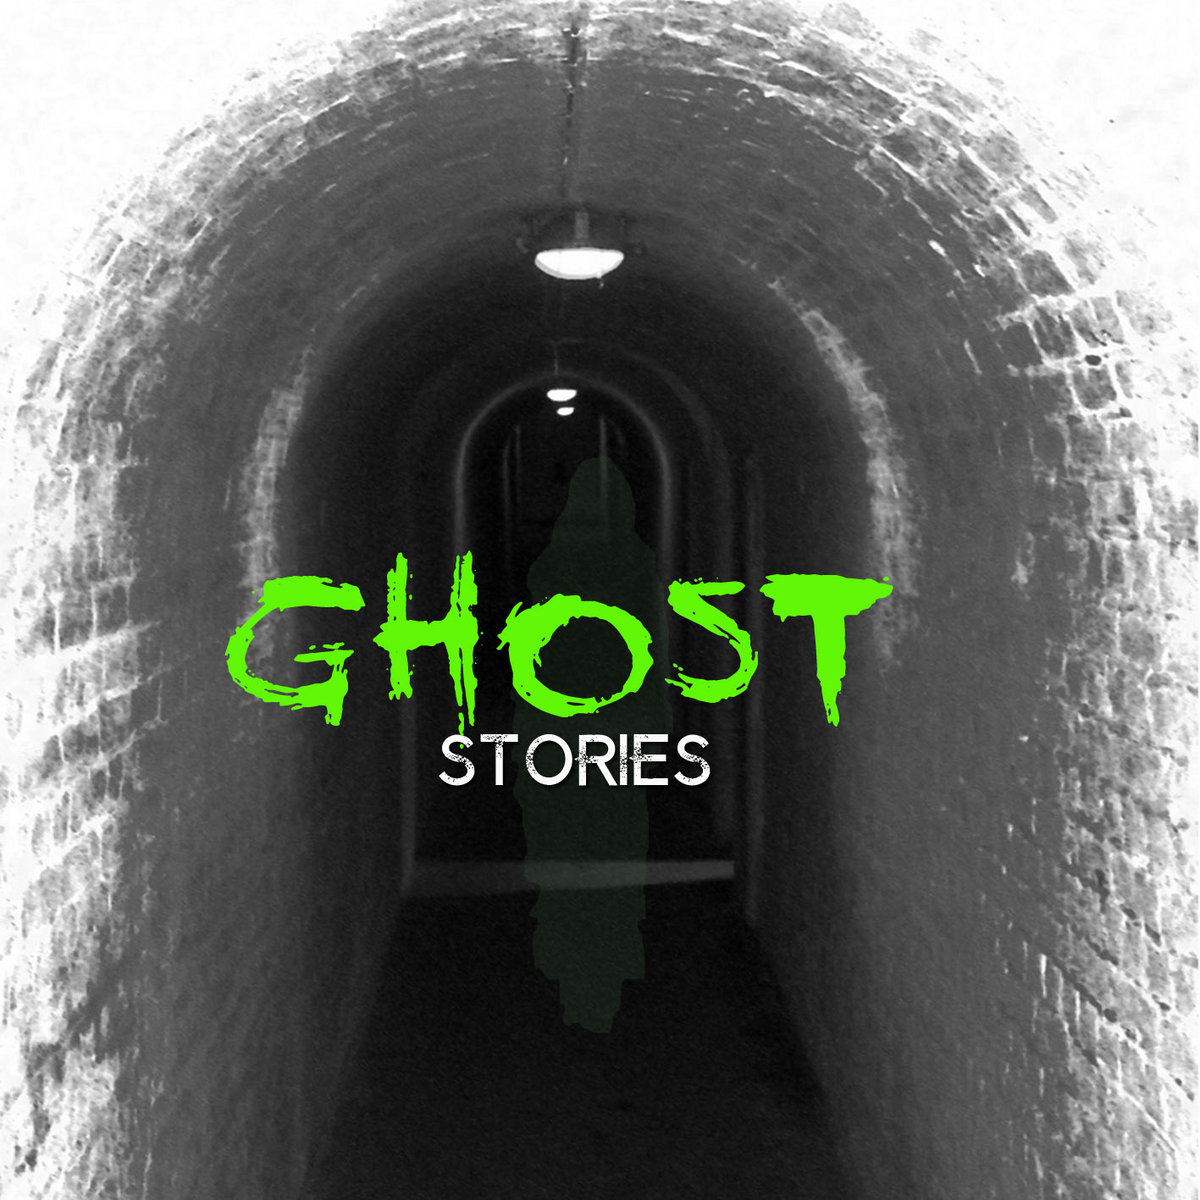 free halloween music download ghost stories electro haunt music for halloween 2018